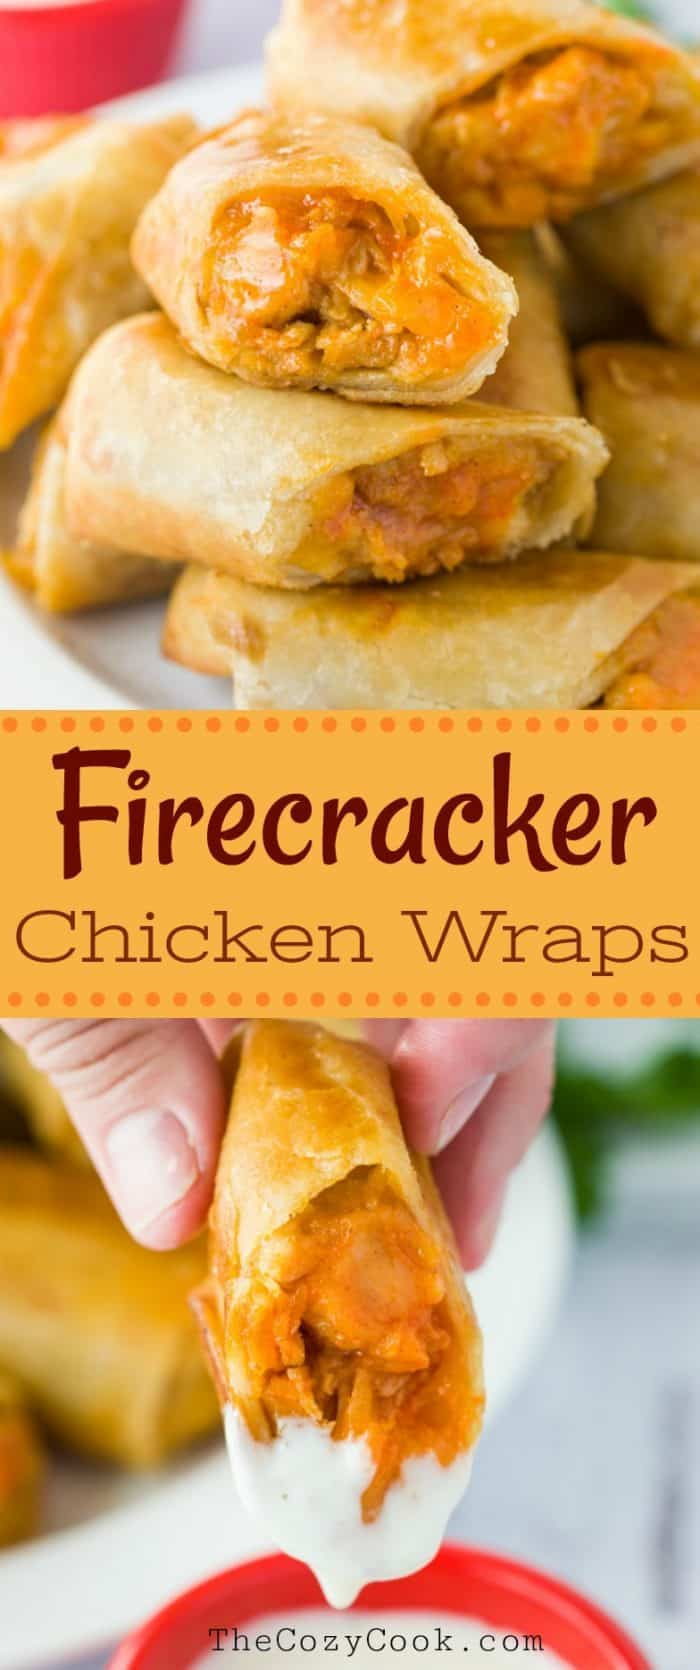 Shredded chicken tossed in a tangy firecracker sauce and served in a crunchy tortilla with Ranch dipping sauce. | The Cozy Cook | #Appetizer #Chicken #Wraps #Tortilla #ChickenWrap #BuffaloChicken